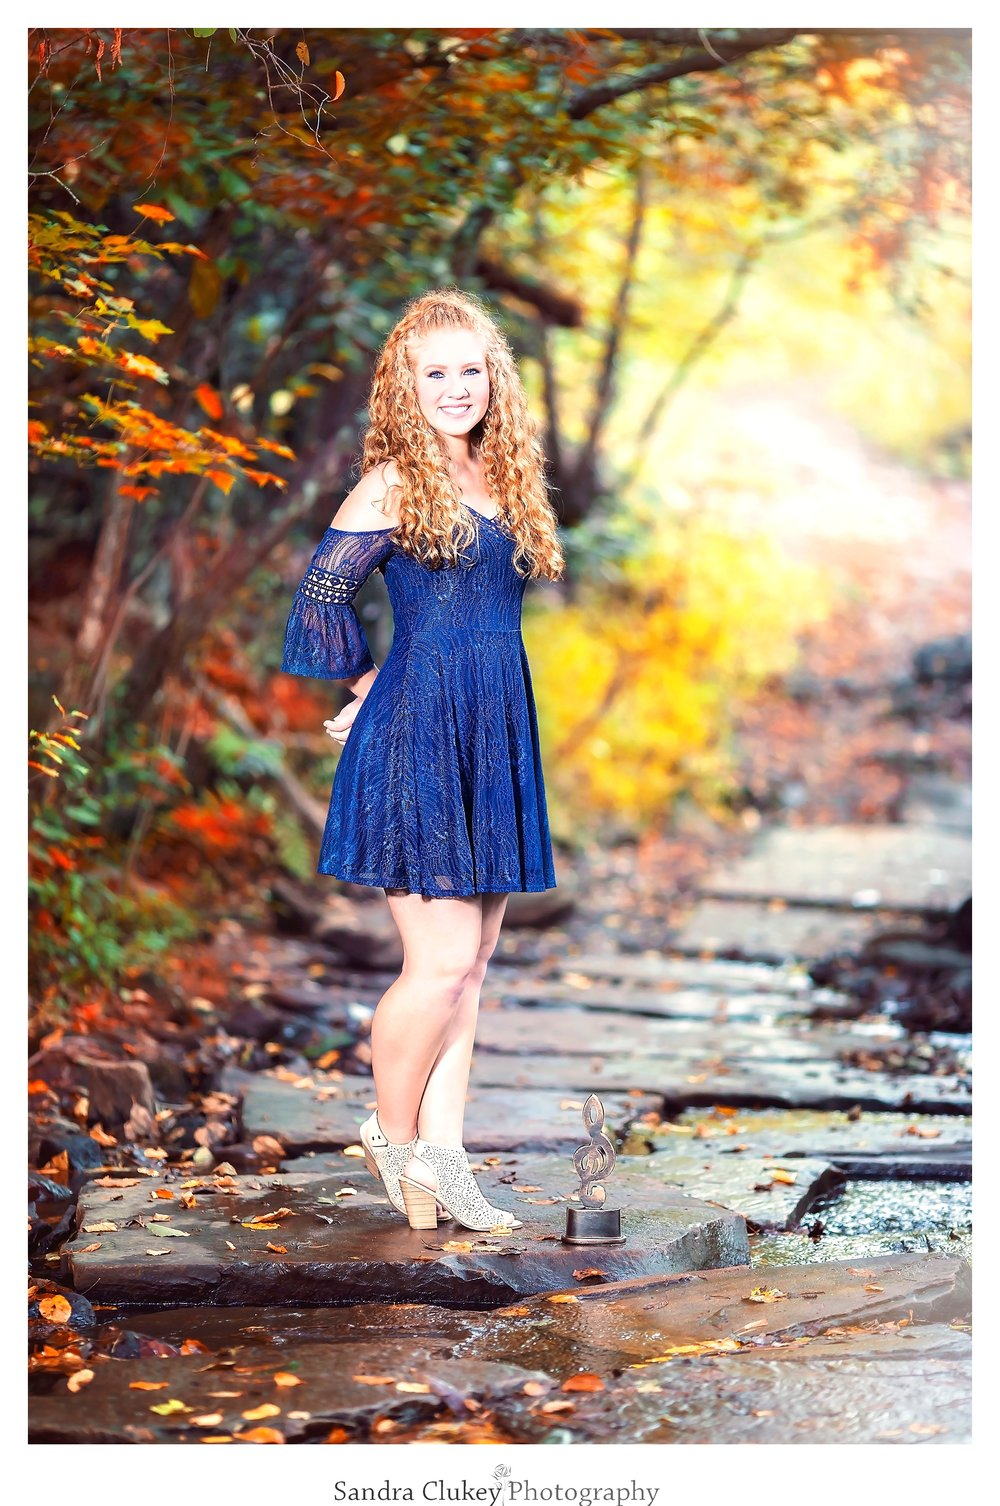 Talented senior shows her passion